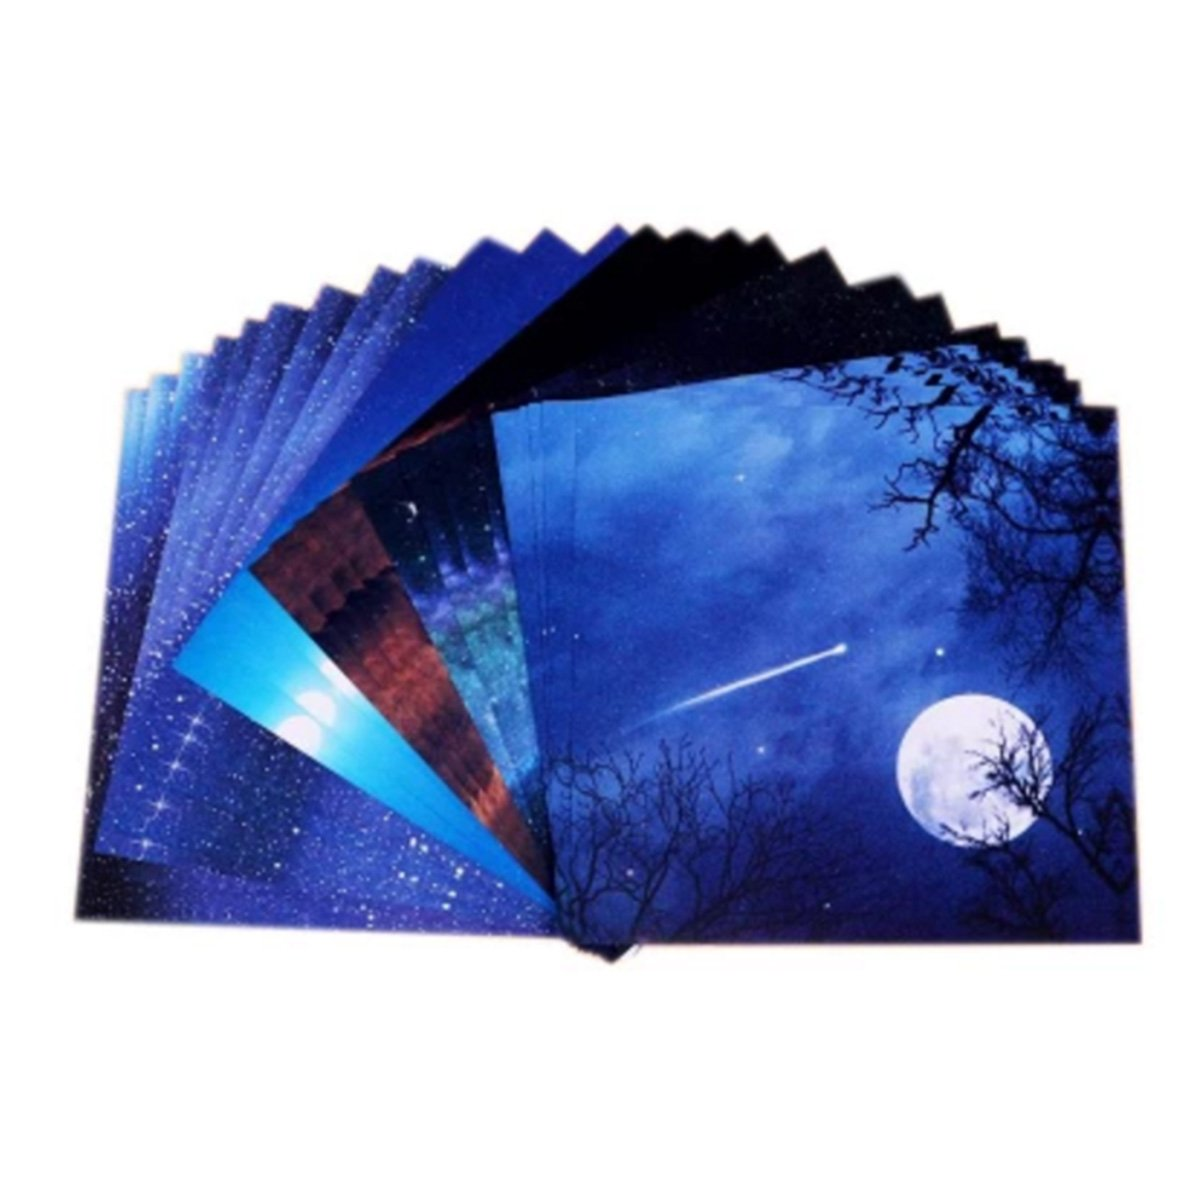 280 Sheets Beautiful Sky Origami Paper Square Folding Paper for Arts and Crafts 6 inch by 6 inch, 10 Different Patterns